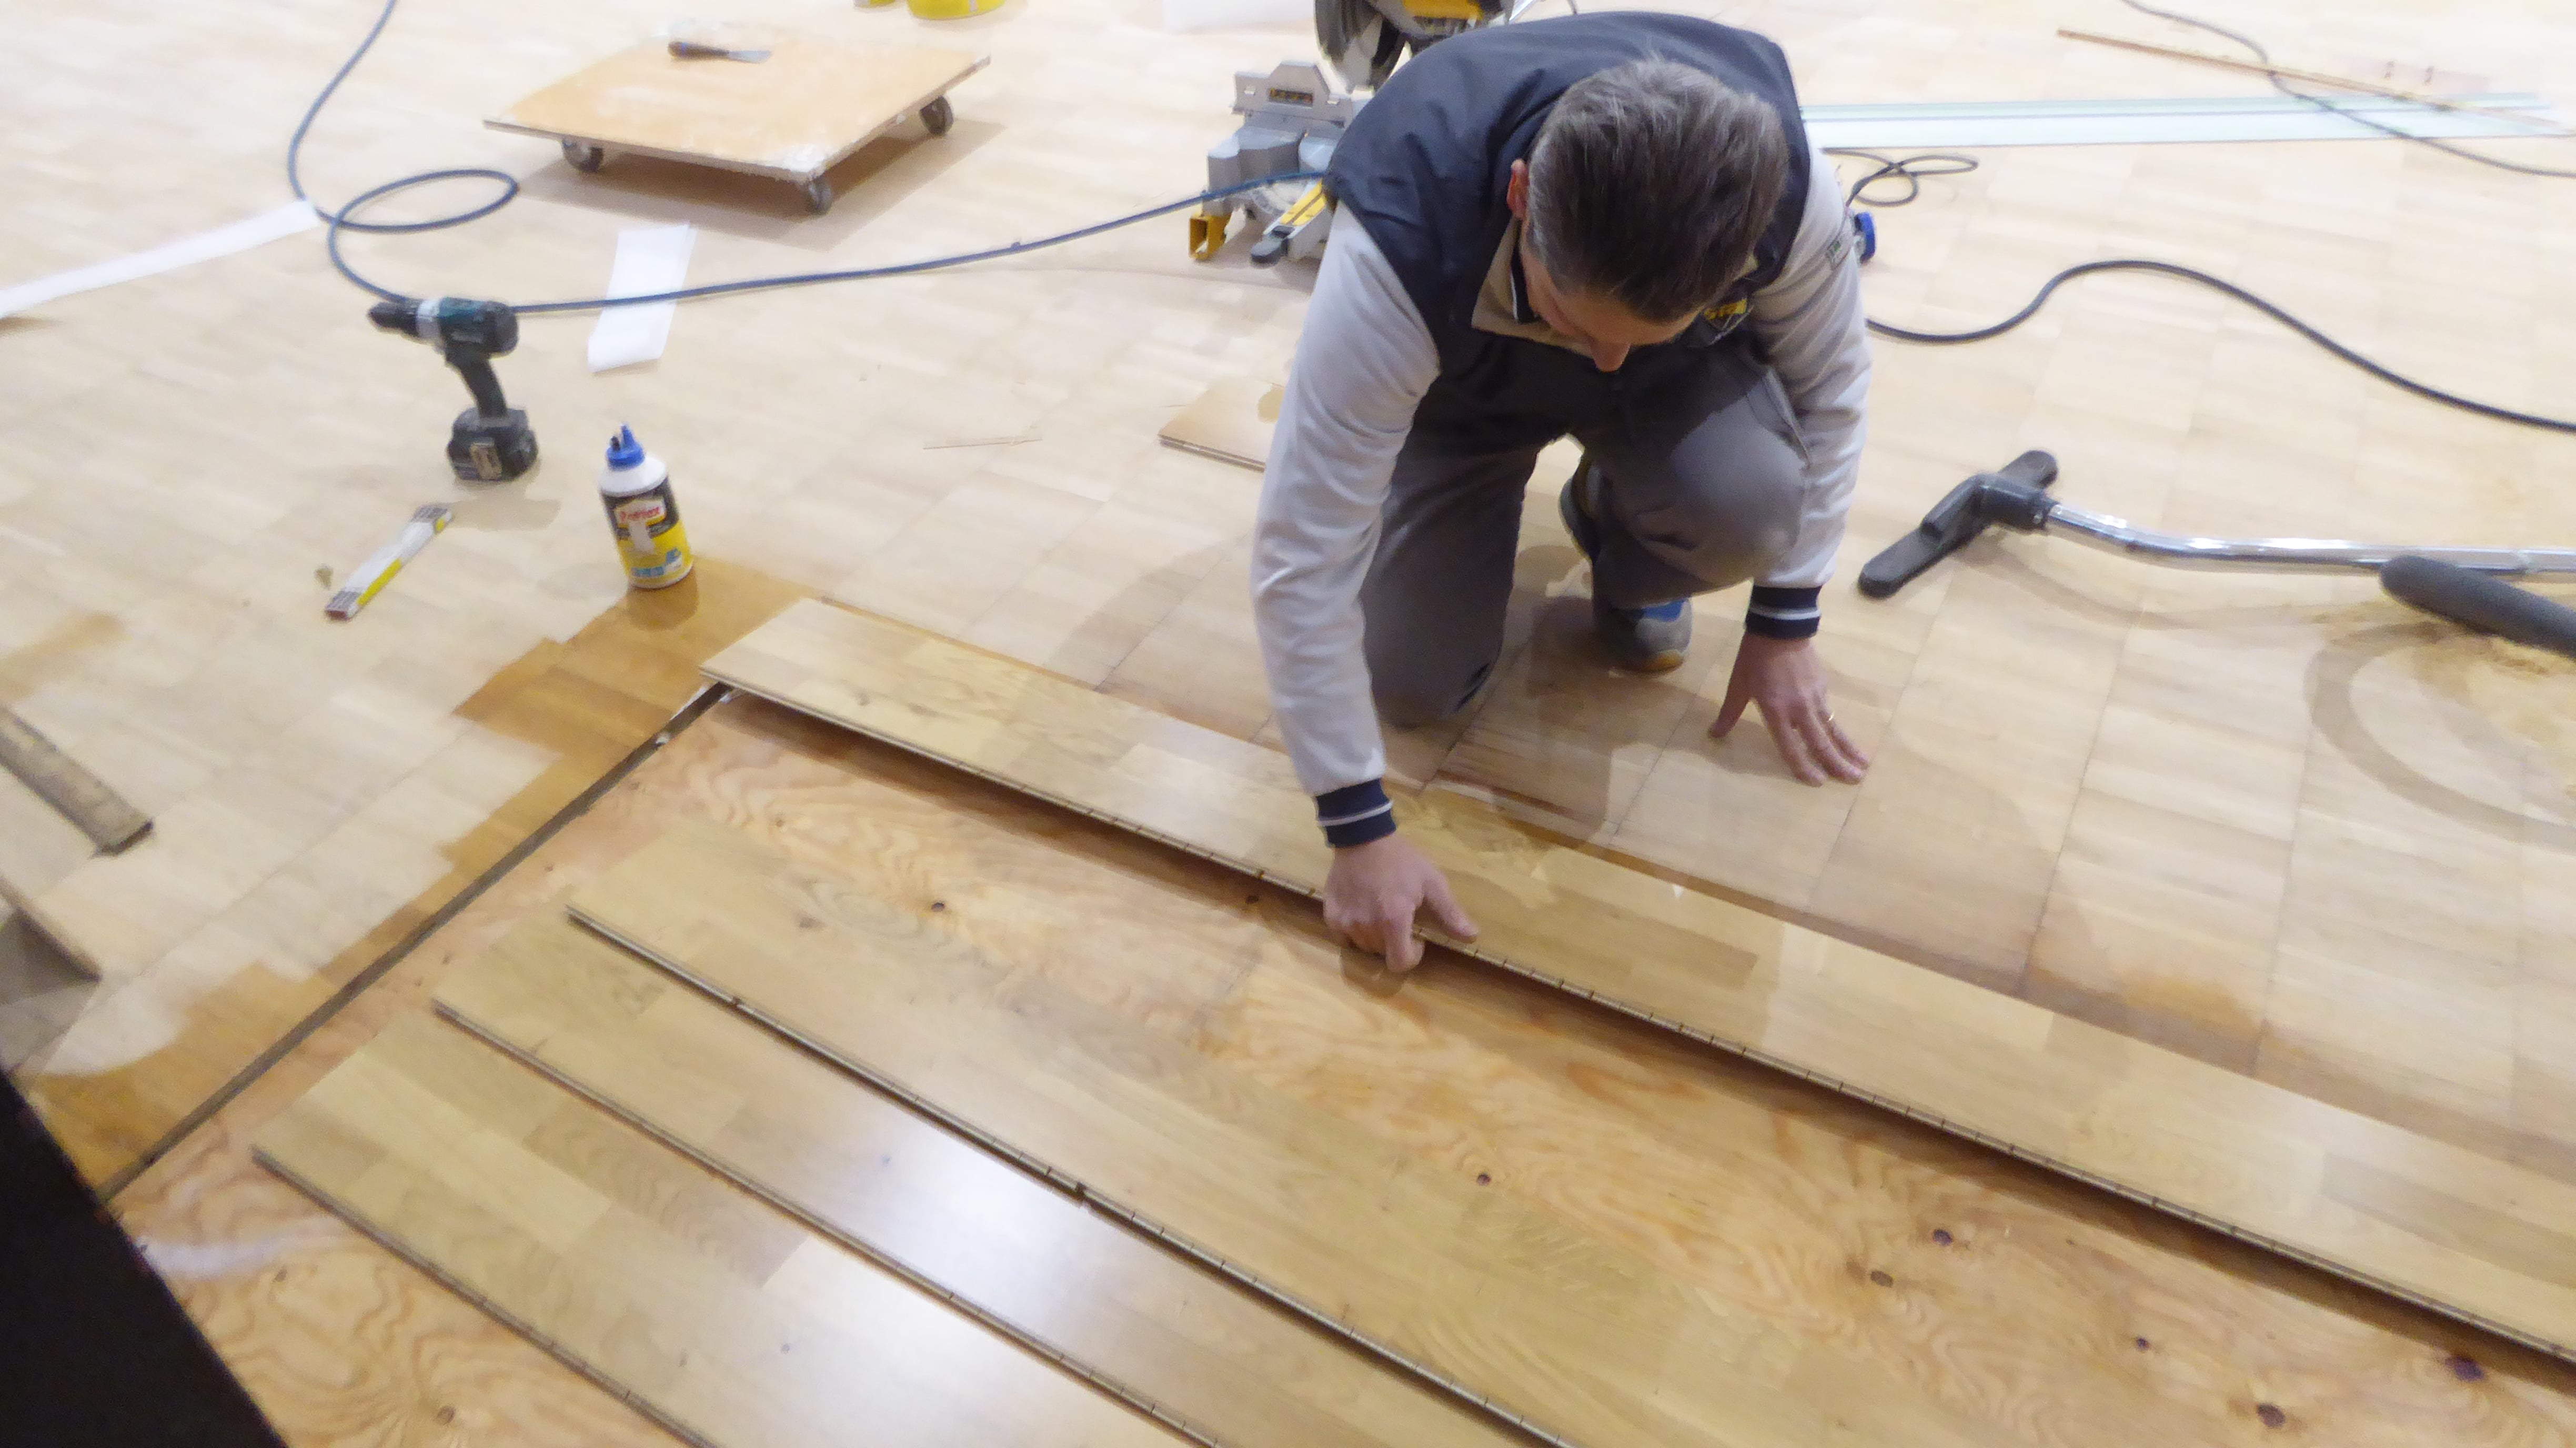 The operations of restoration and replacement of some planks